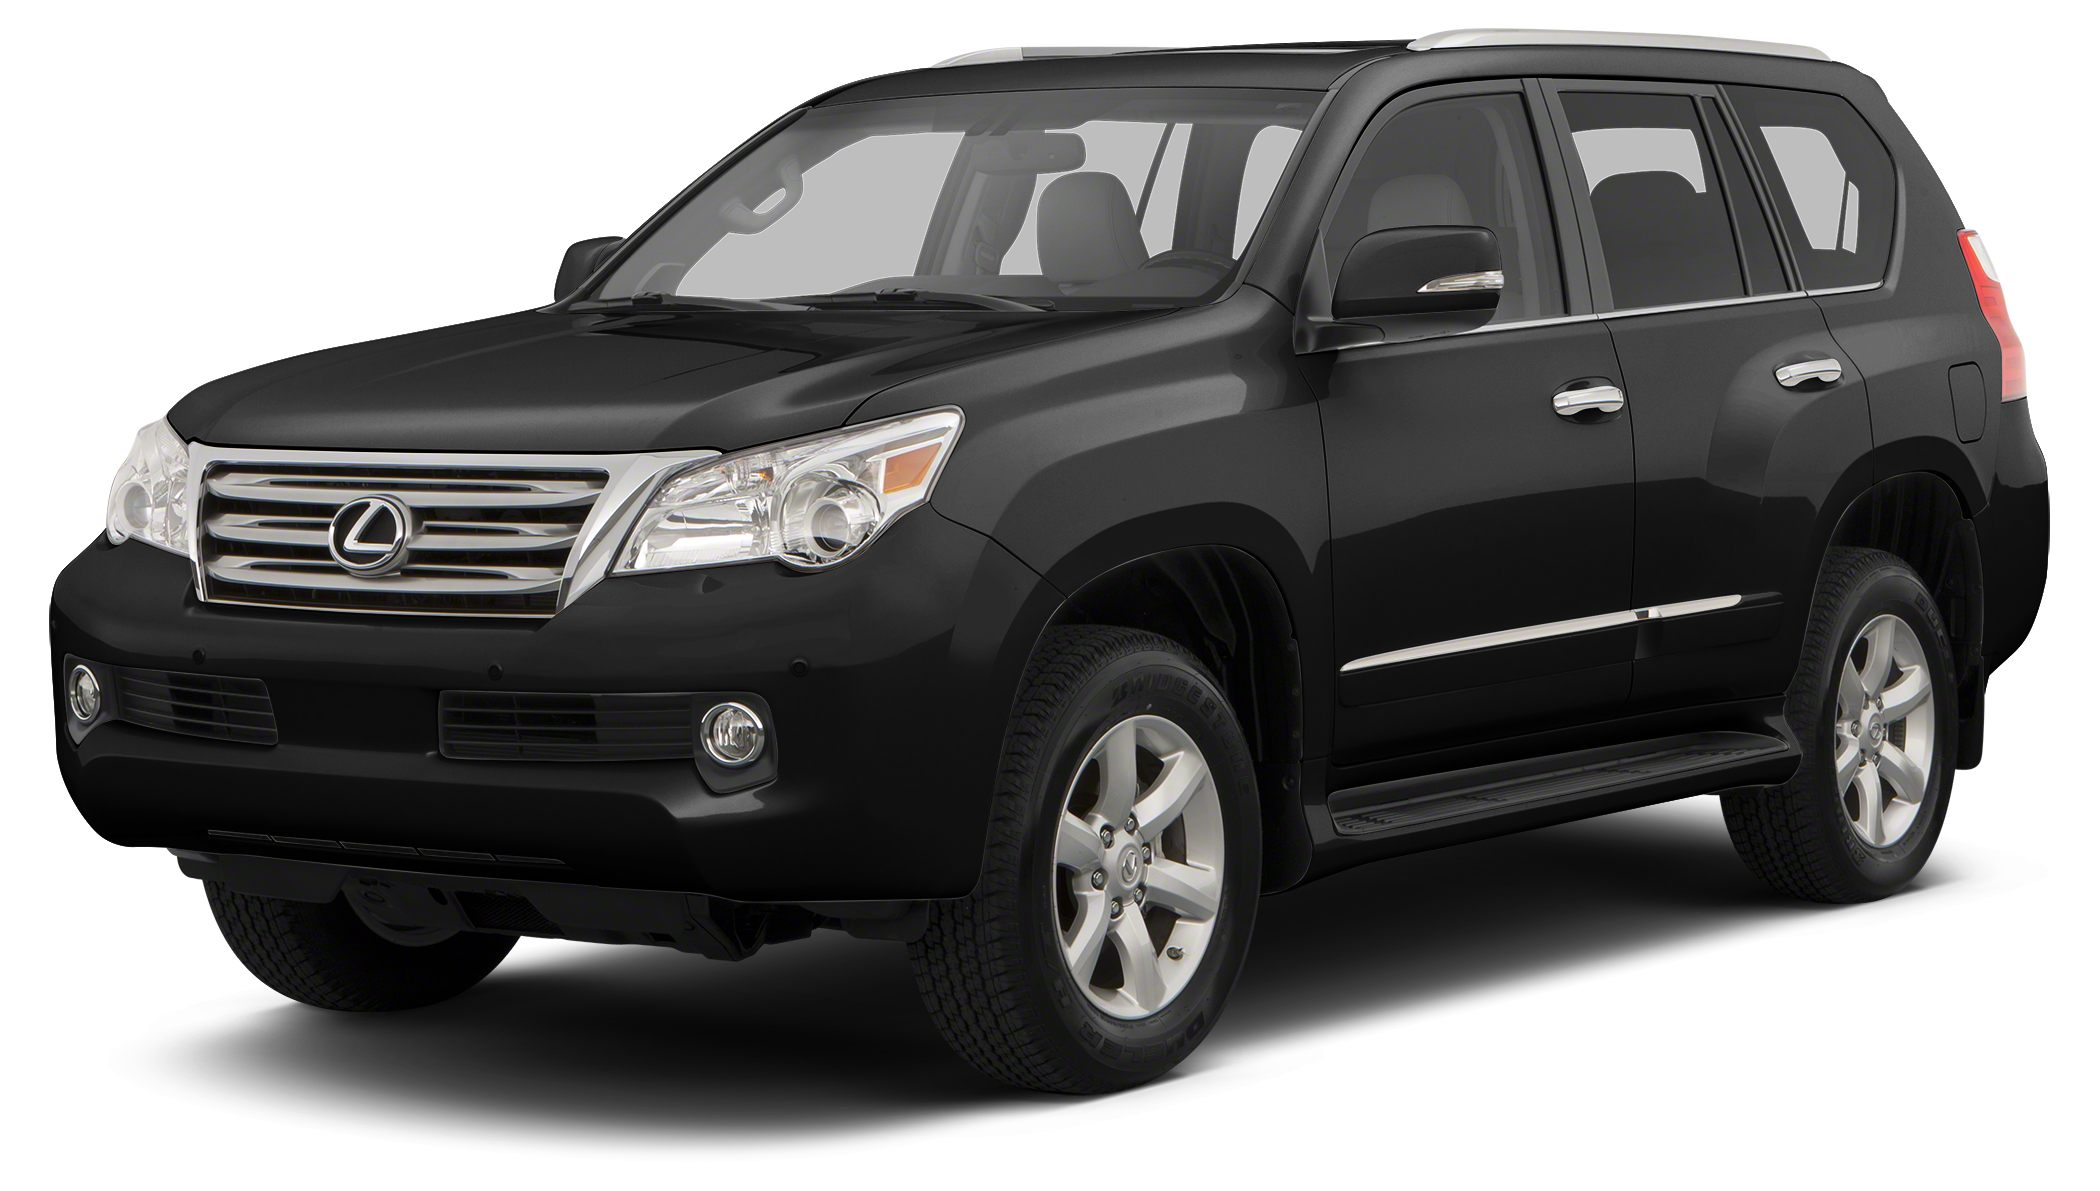 2013 Lexus GX 460 Base Take your hand off the mouse because this superb 2013 Lexus GX is the one-o